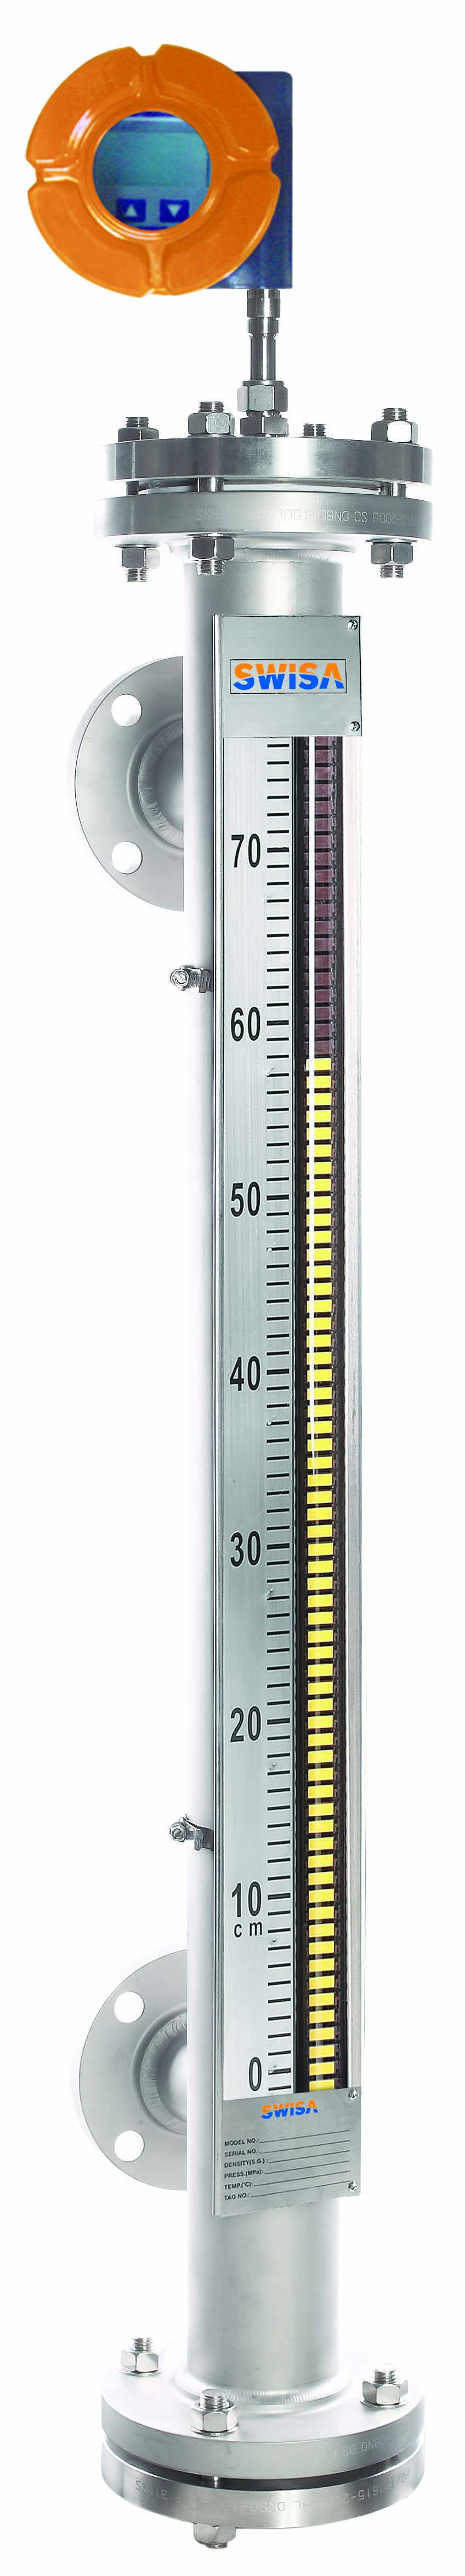 Super-chamber Technical Magnetic Level Gauge